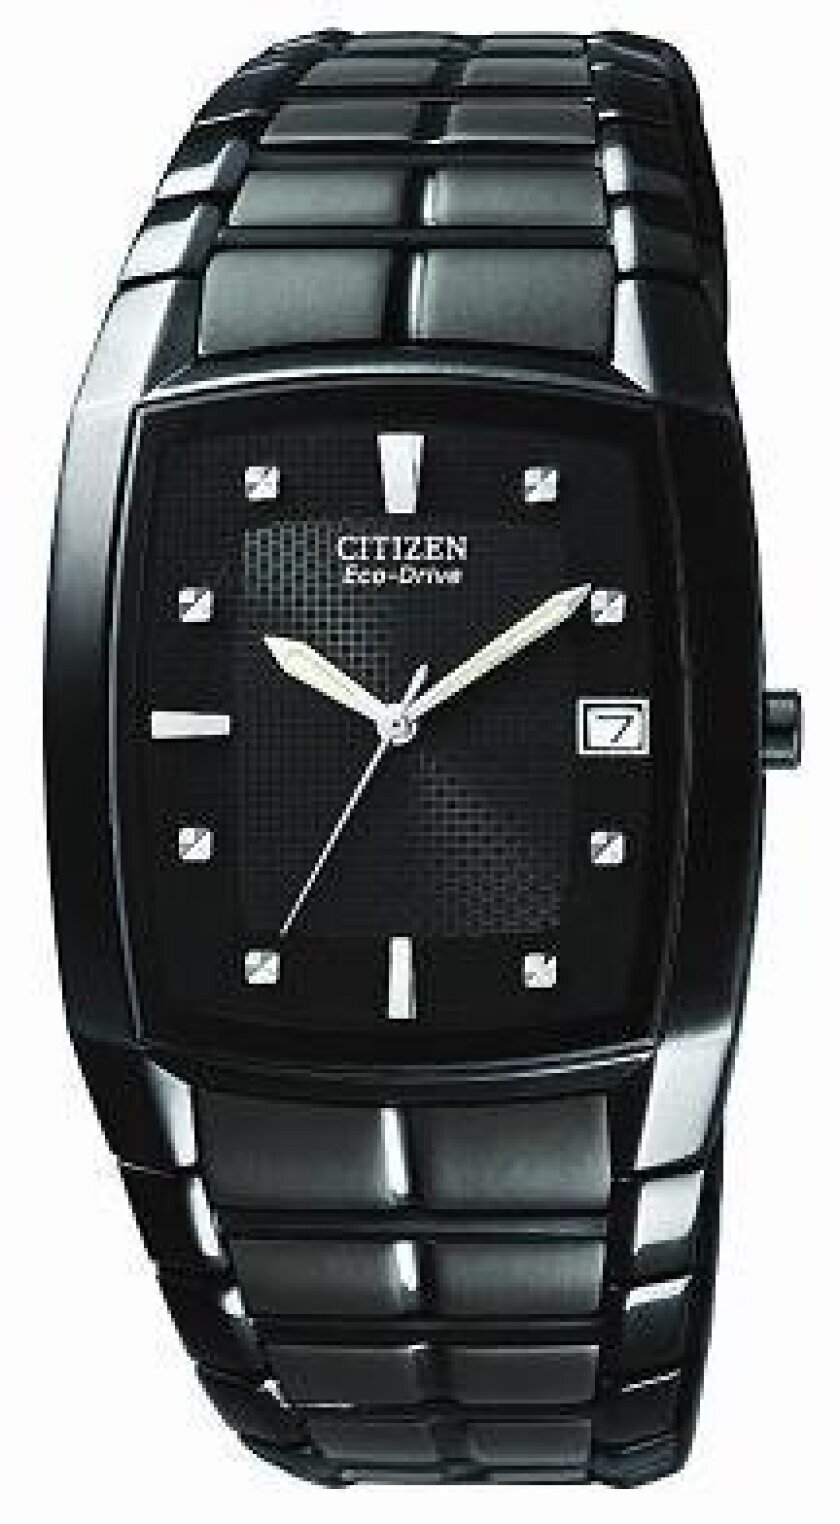 Time Wise Jewelers offers Citizen watches for up to 50 percent off.